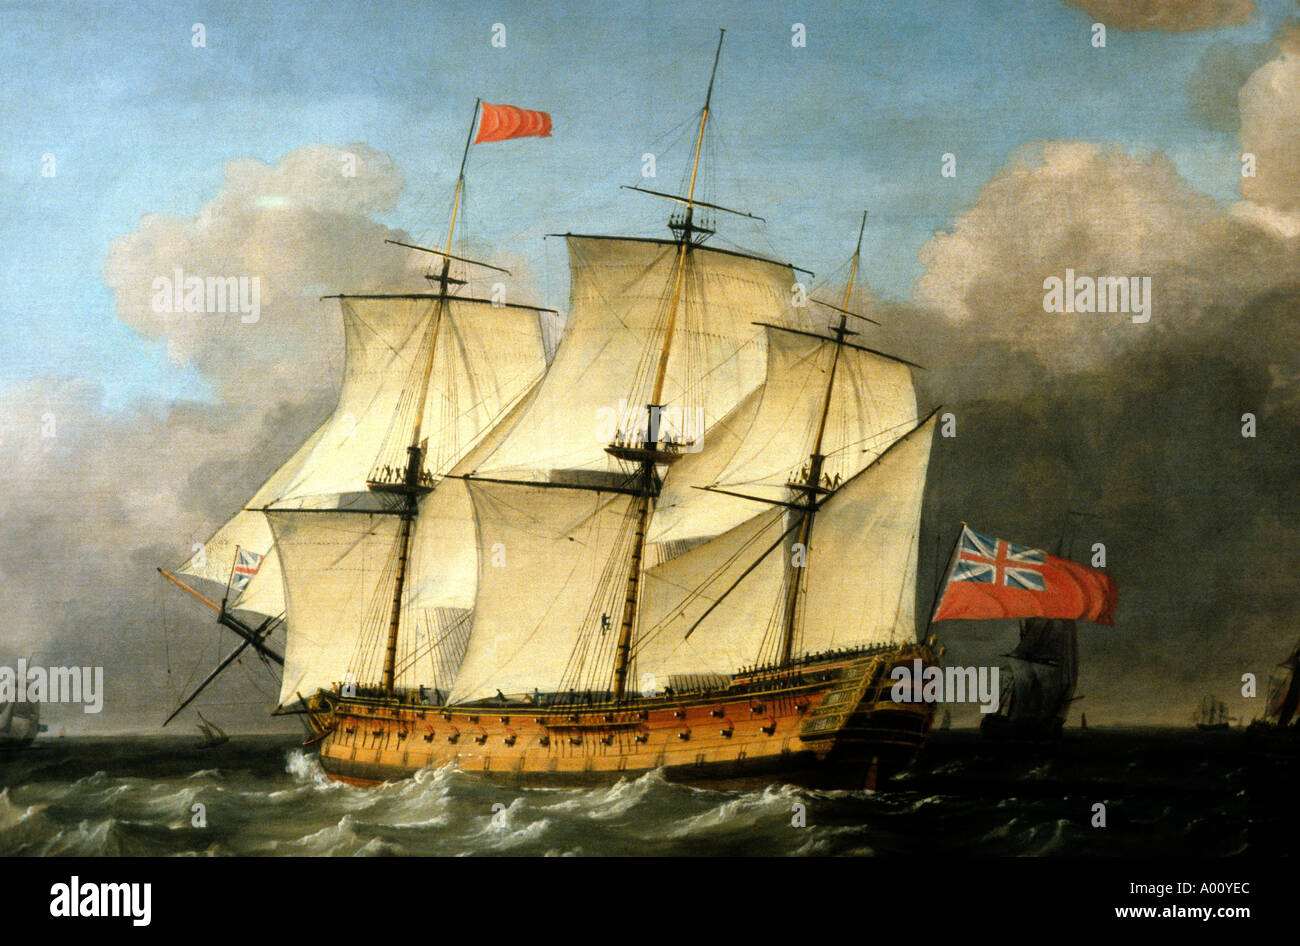 HMS Victory 1793 painting by Swaine England UK Admiral Lord Horatio Nelson war battle sailing ship Trafalgar Nelsonia ships - Stock Image